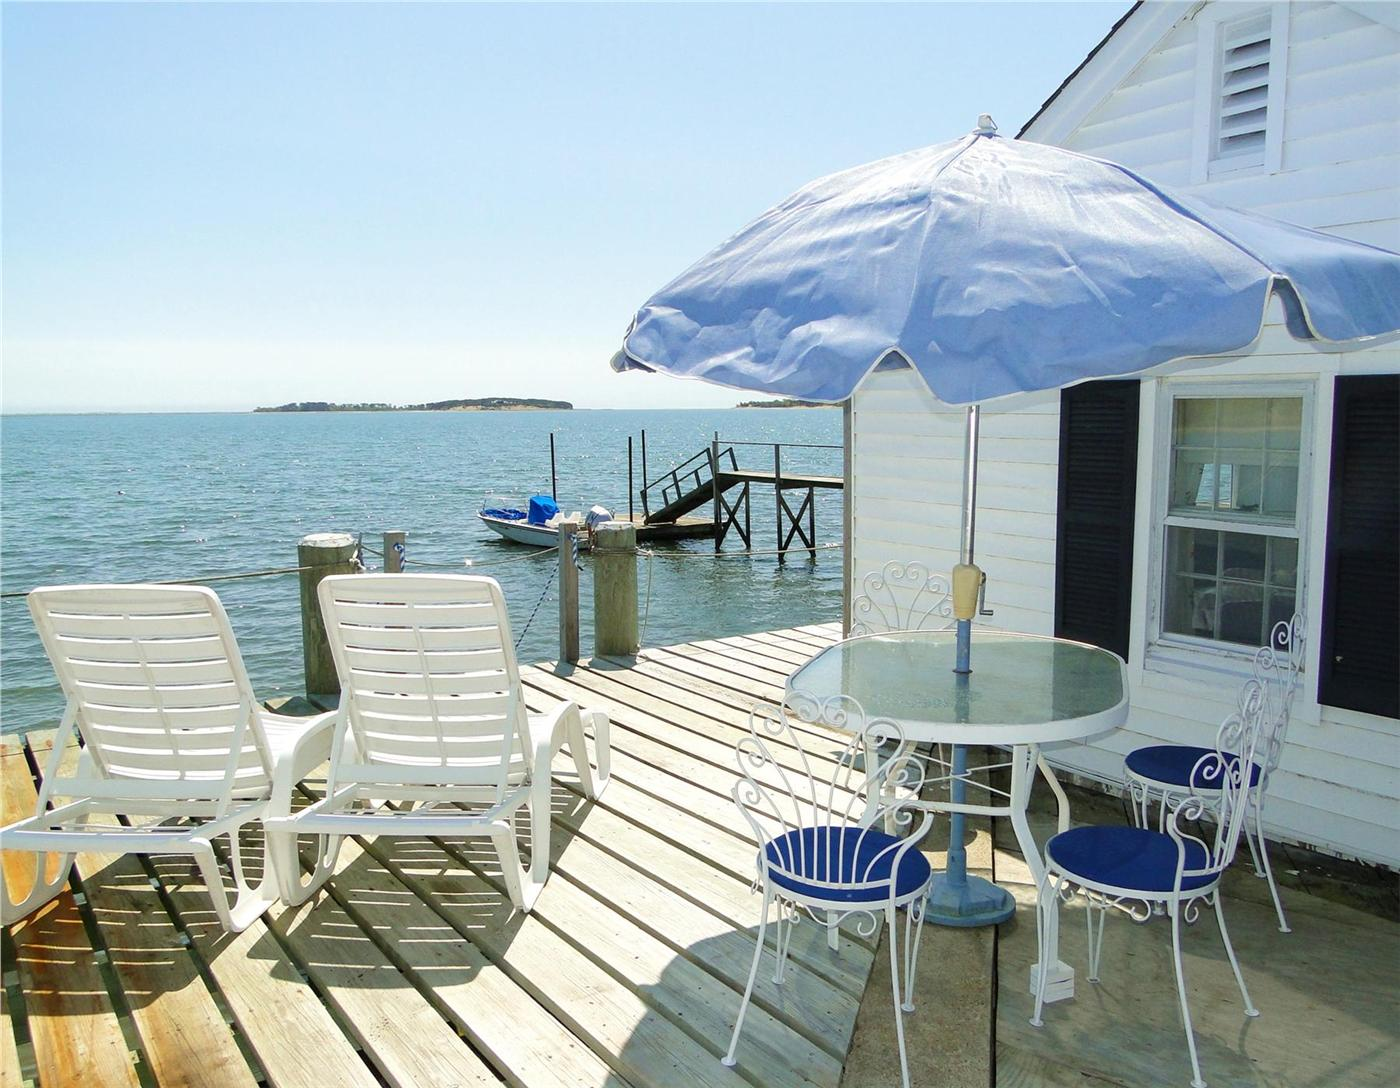 Orleans Vacation Rental Home In Cape Cod Ma 02662 1 8